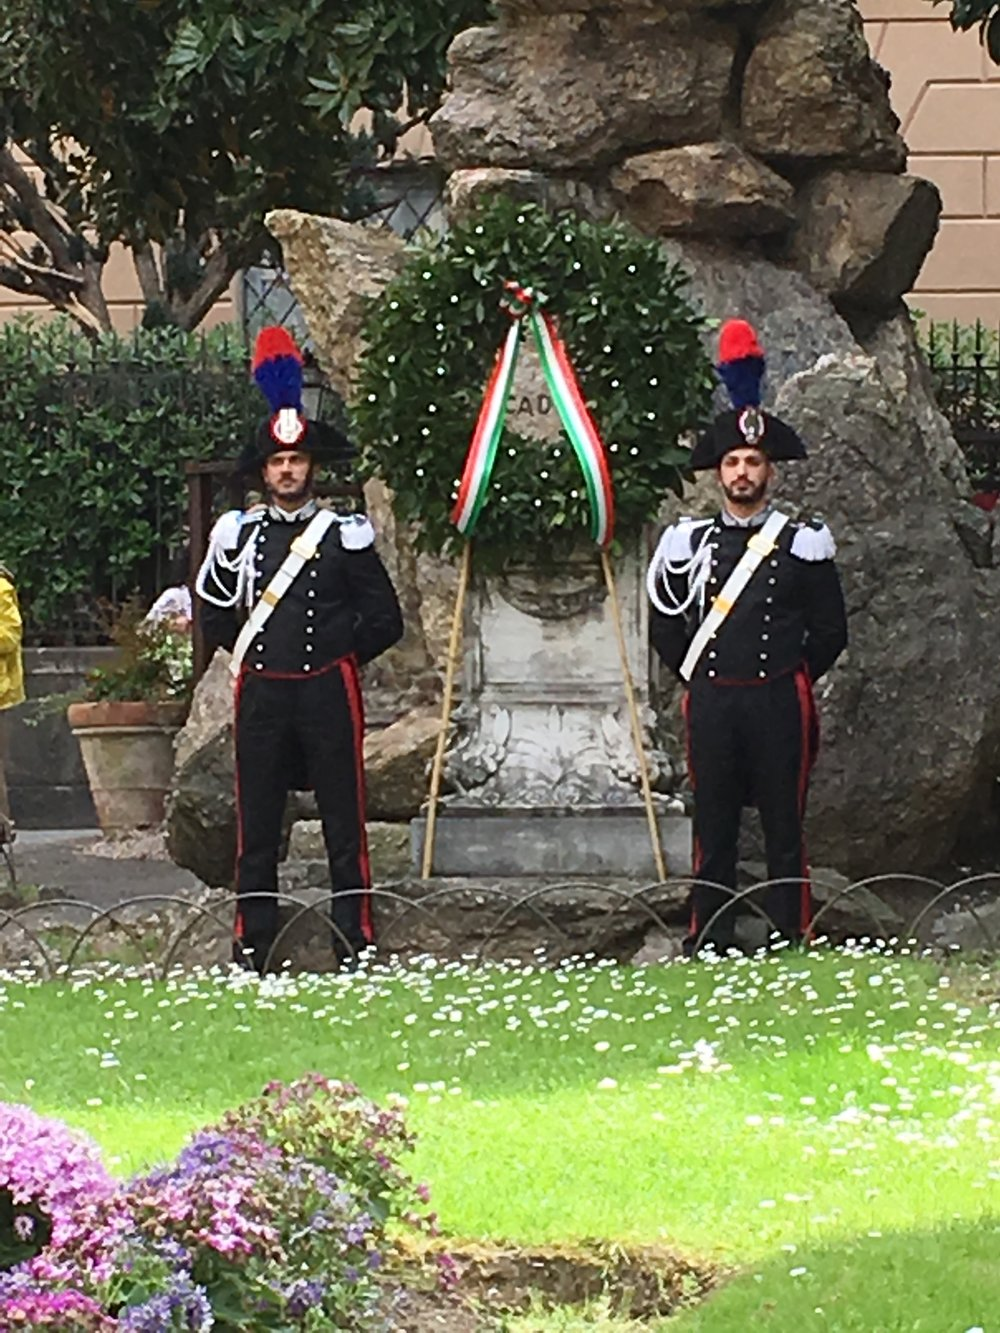 Wreath laying ceremony, Lucca.